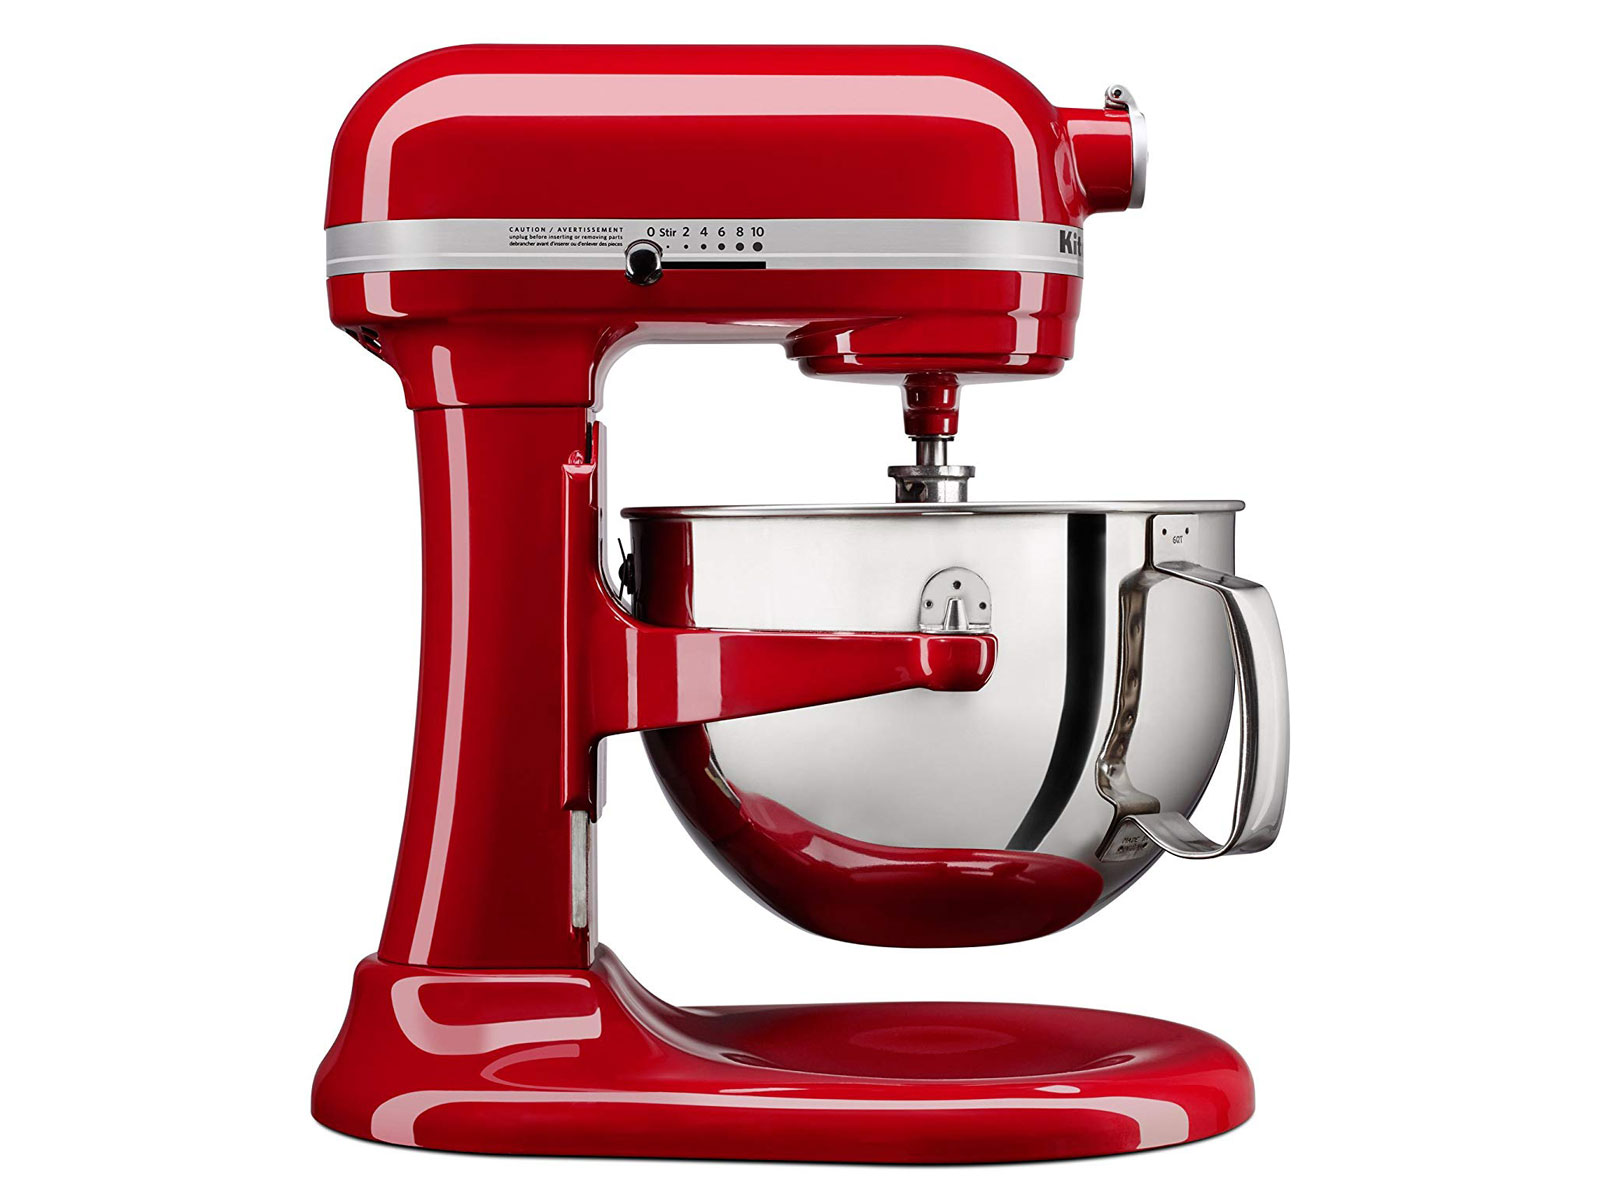 Amazon Launches Black Friday Kitchenaid Deals A Month Early